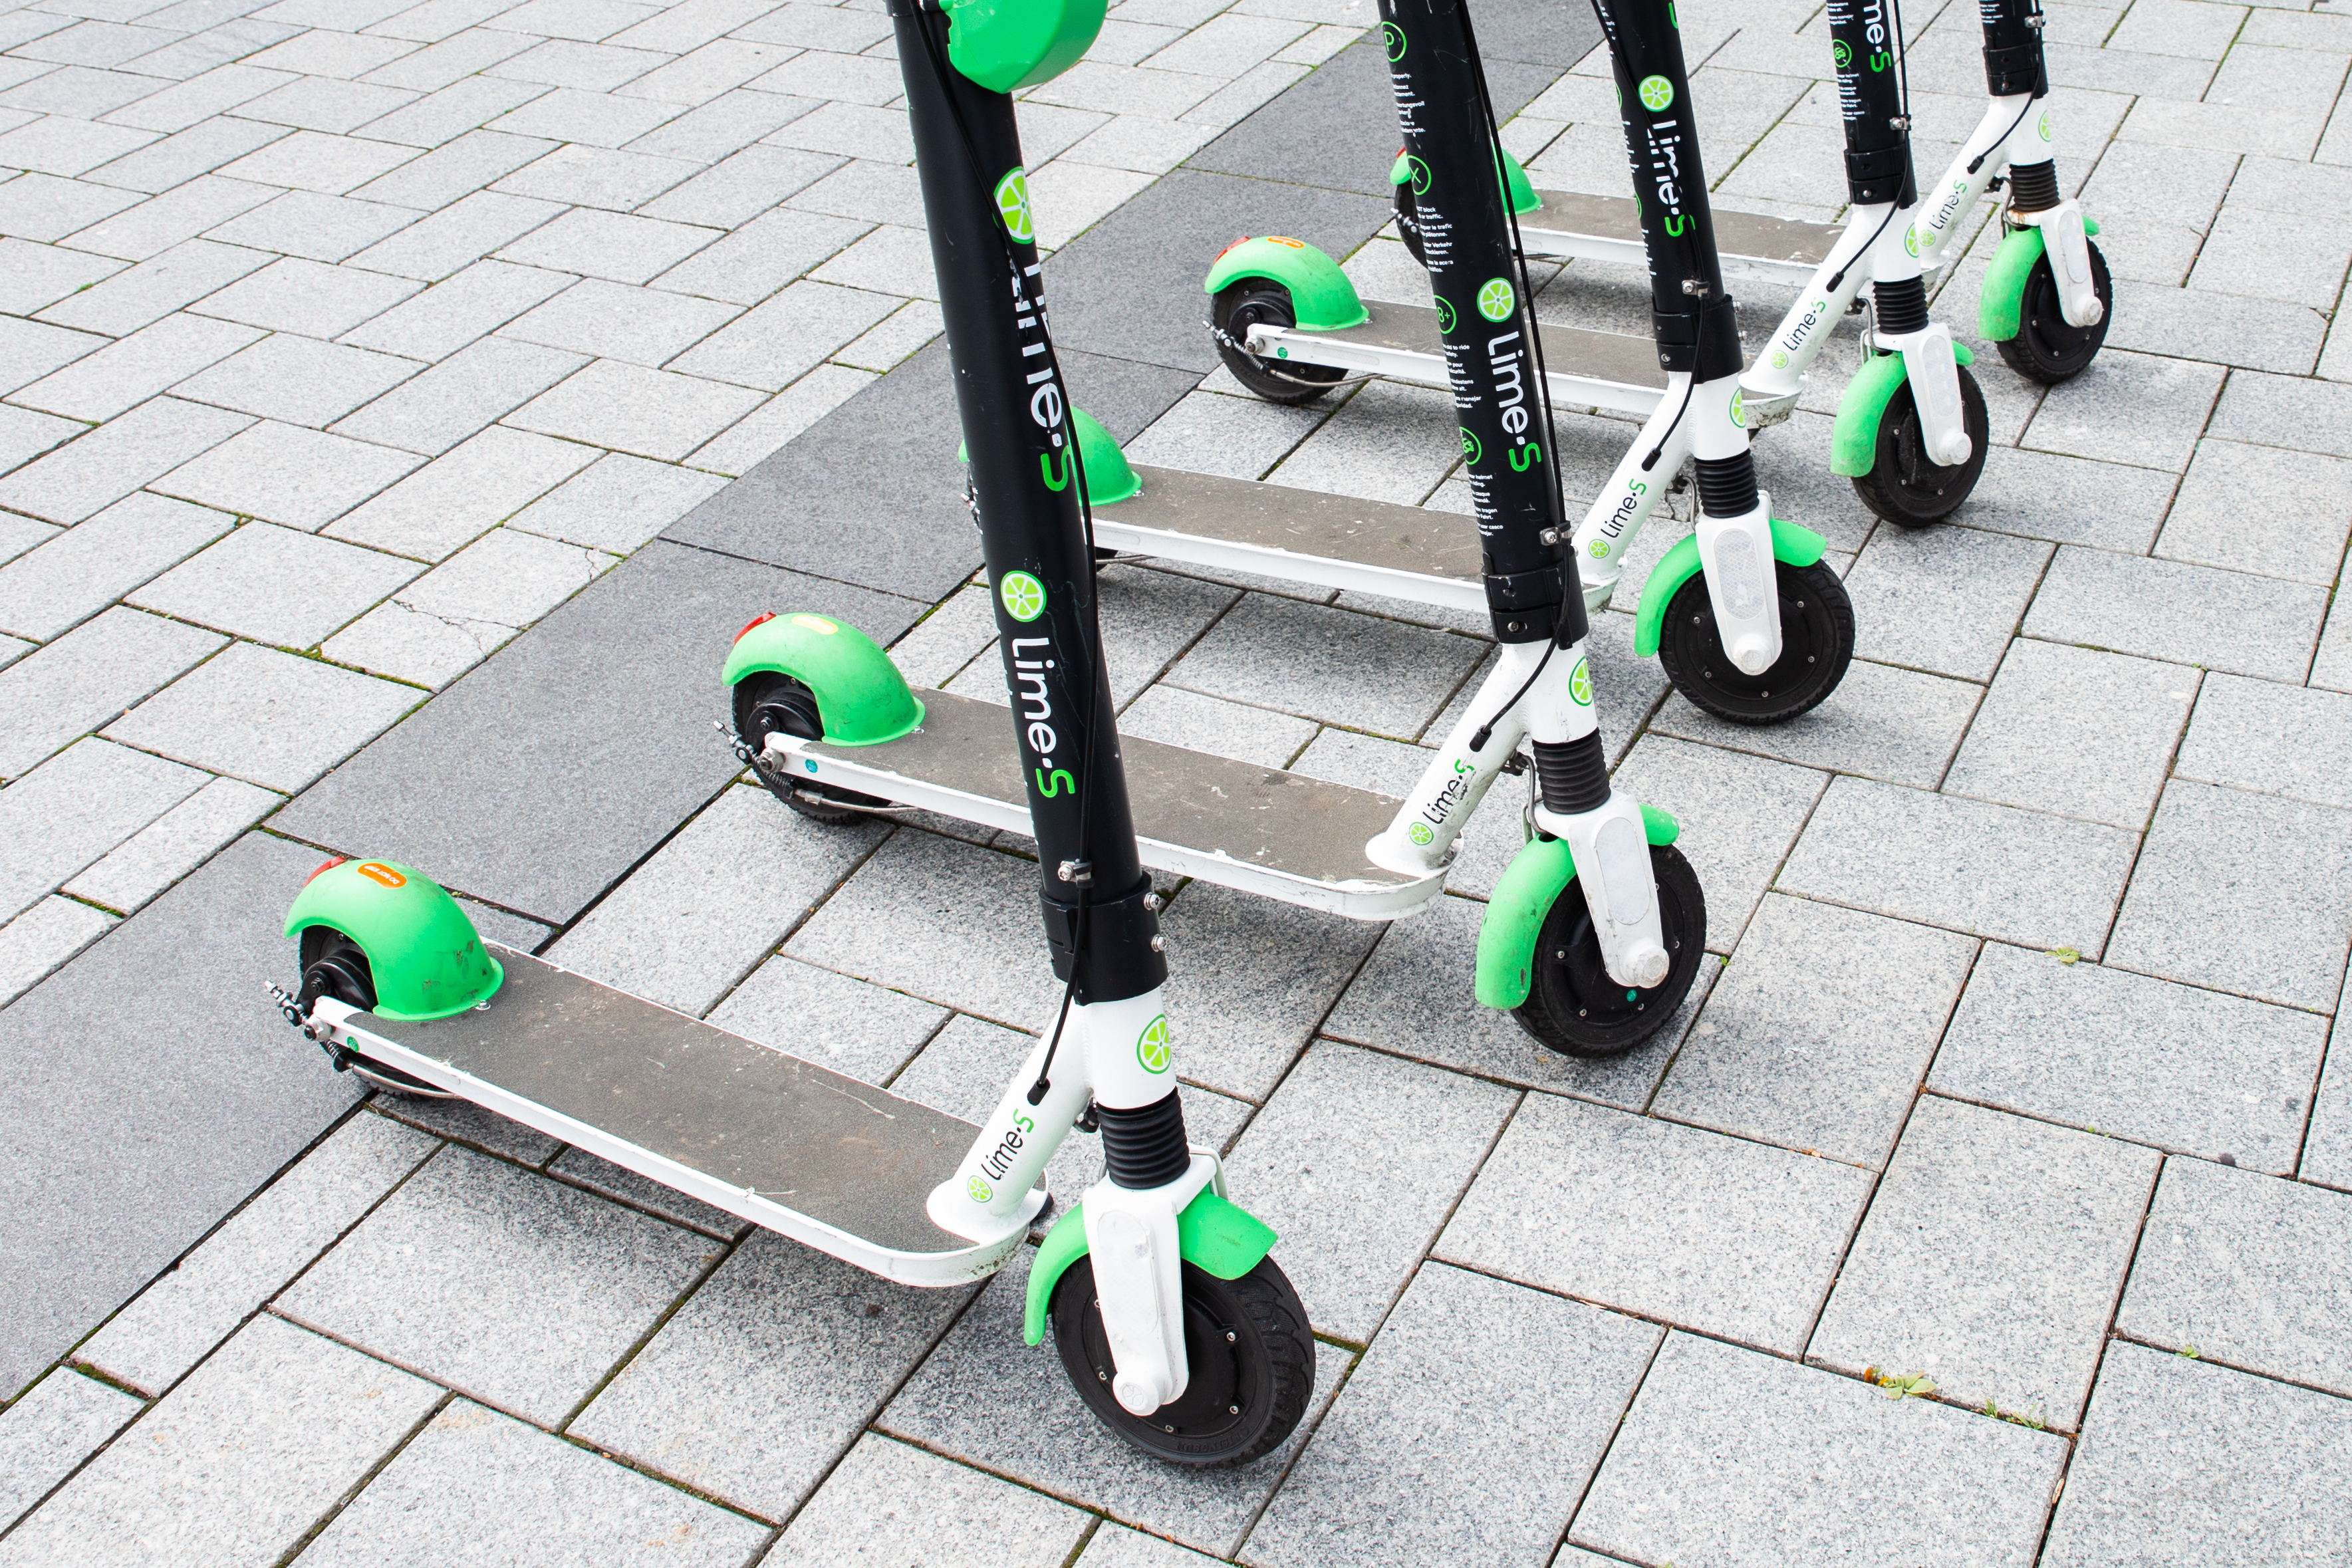 More scooters needed to meet Chicago's demand, Lime says